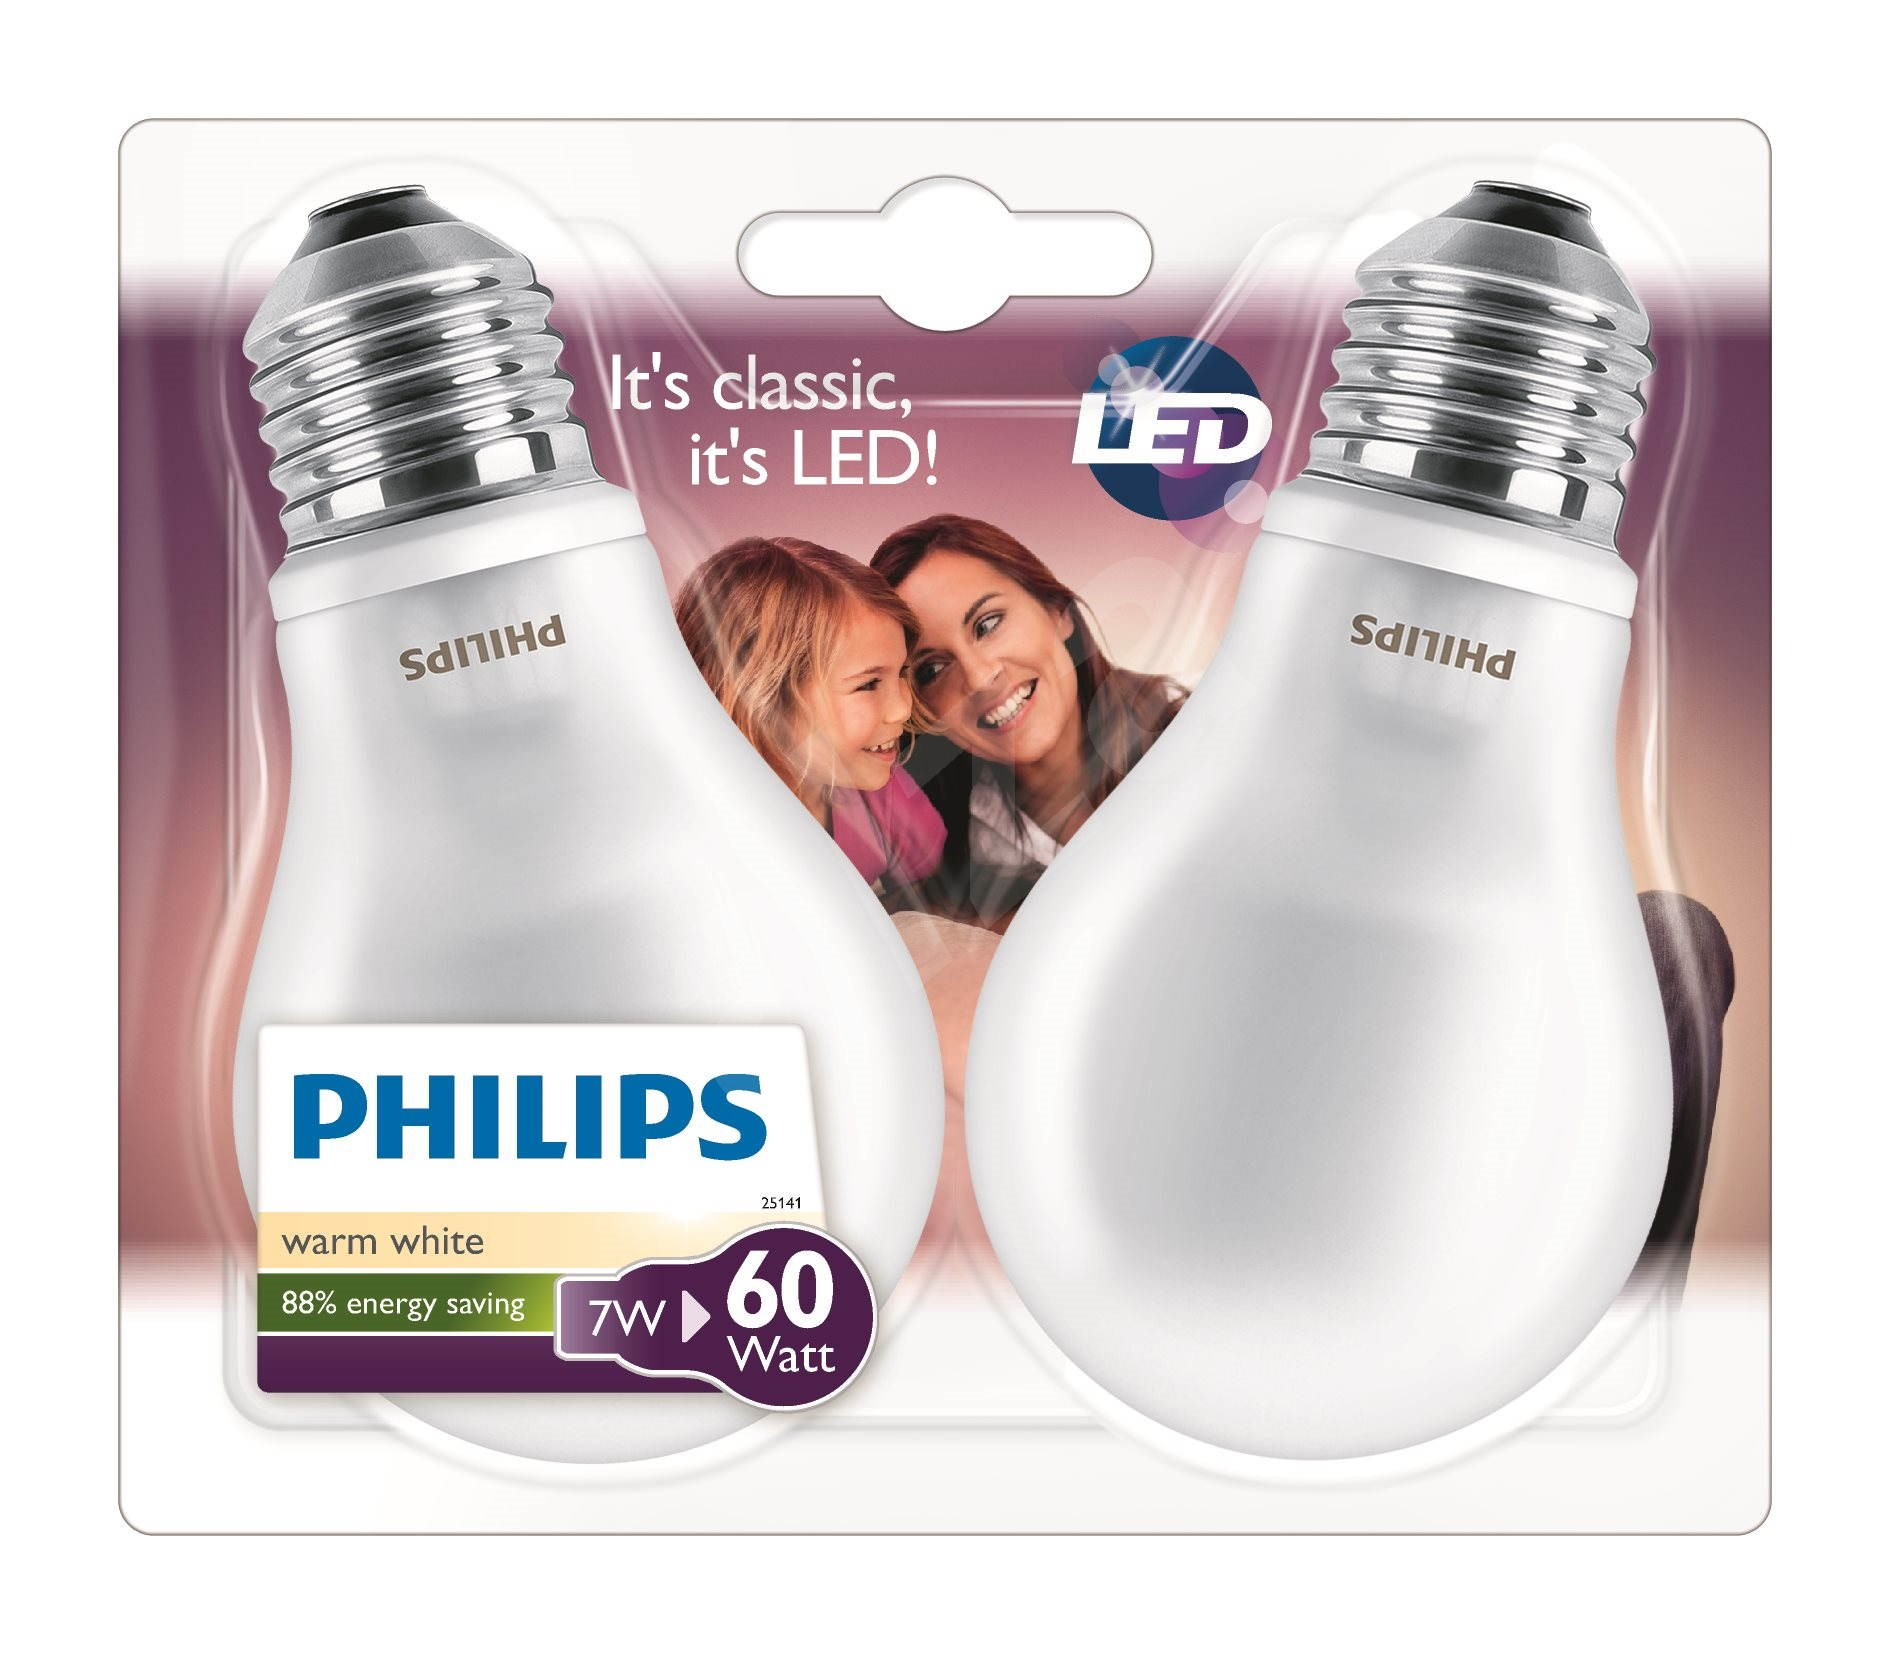 philips led classic 7 60w e27 2700k milky white 2pcs led bulb. Black Bedroom Furniture Sets. Home Design Ideas